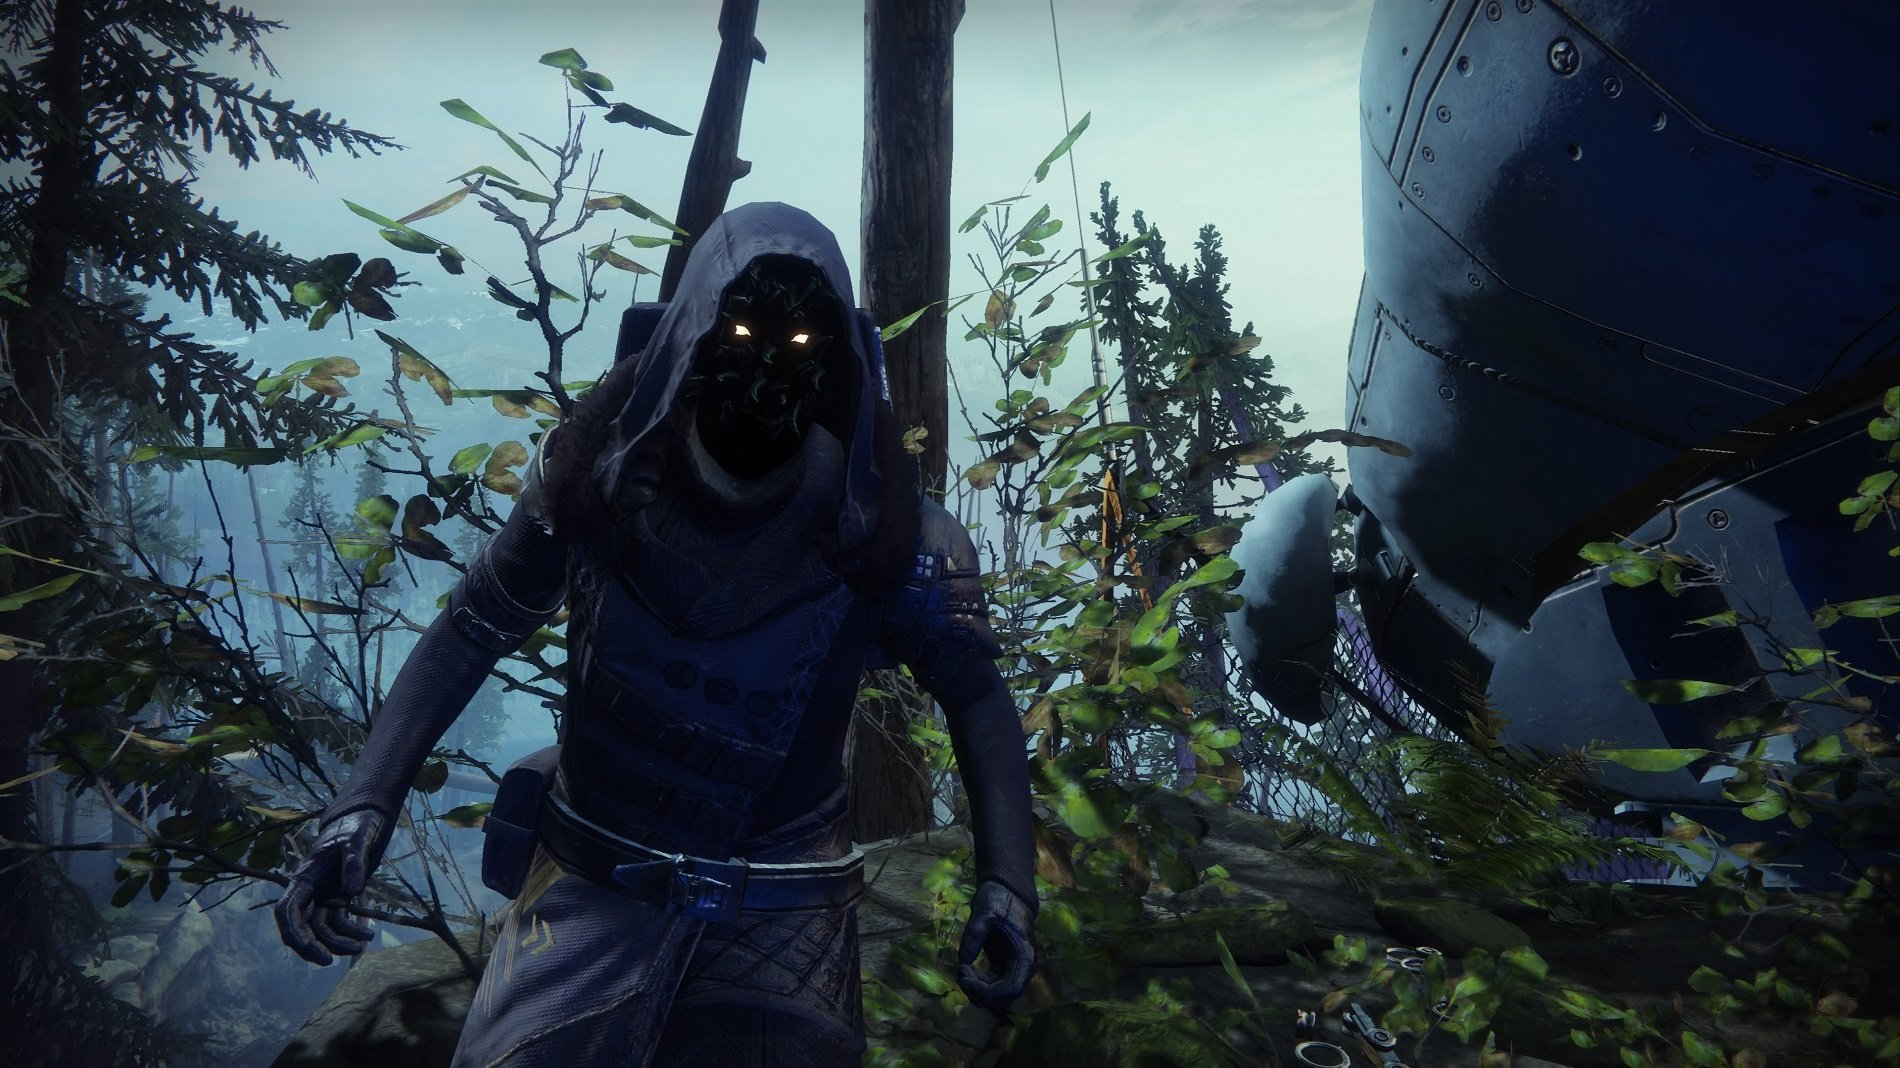 Where to find Xur in Destiny 2 - August 23, 2019